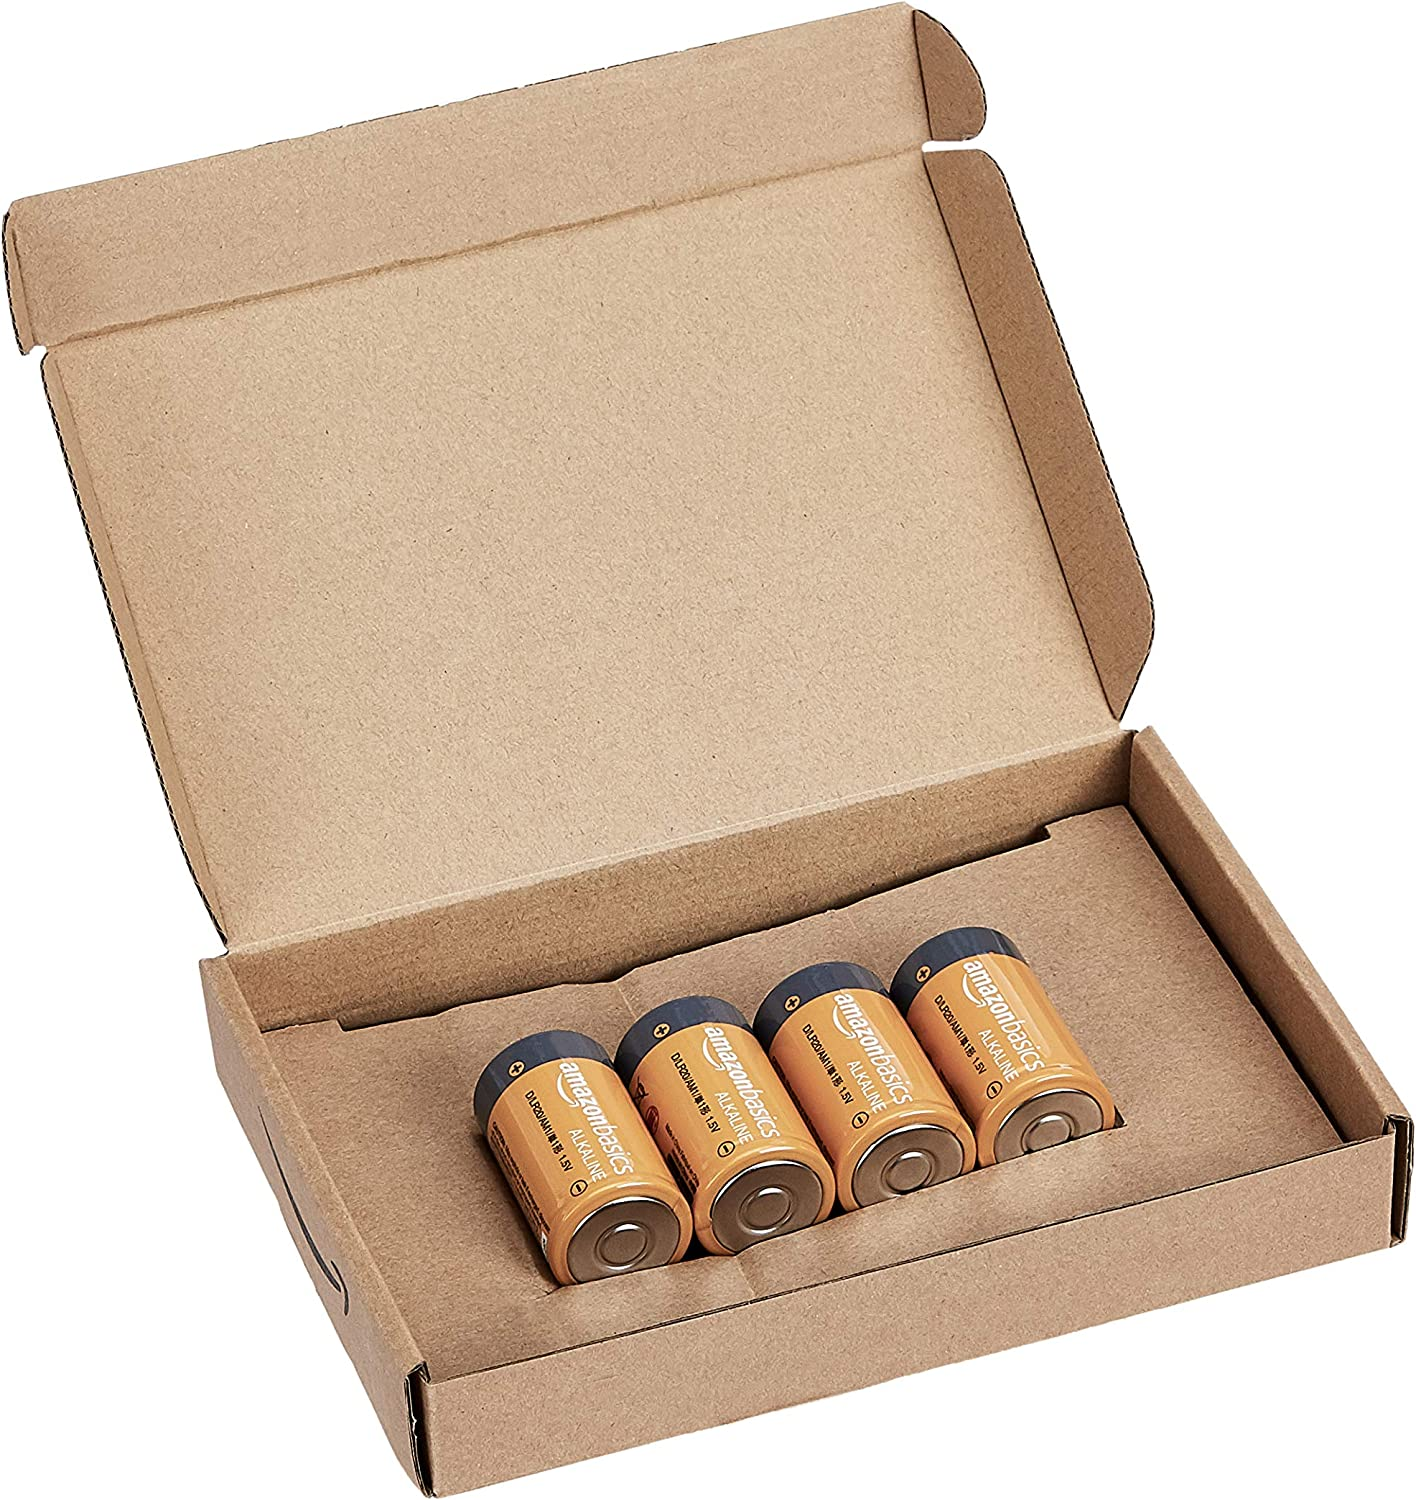 Appearance may vary Pack of 4 Basics AAAA 1.5 Volt Everyday Alkaline Batteries